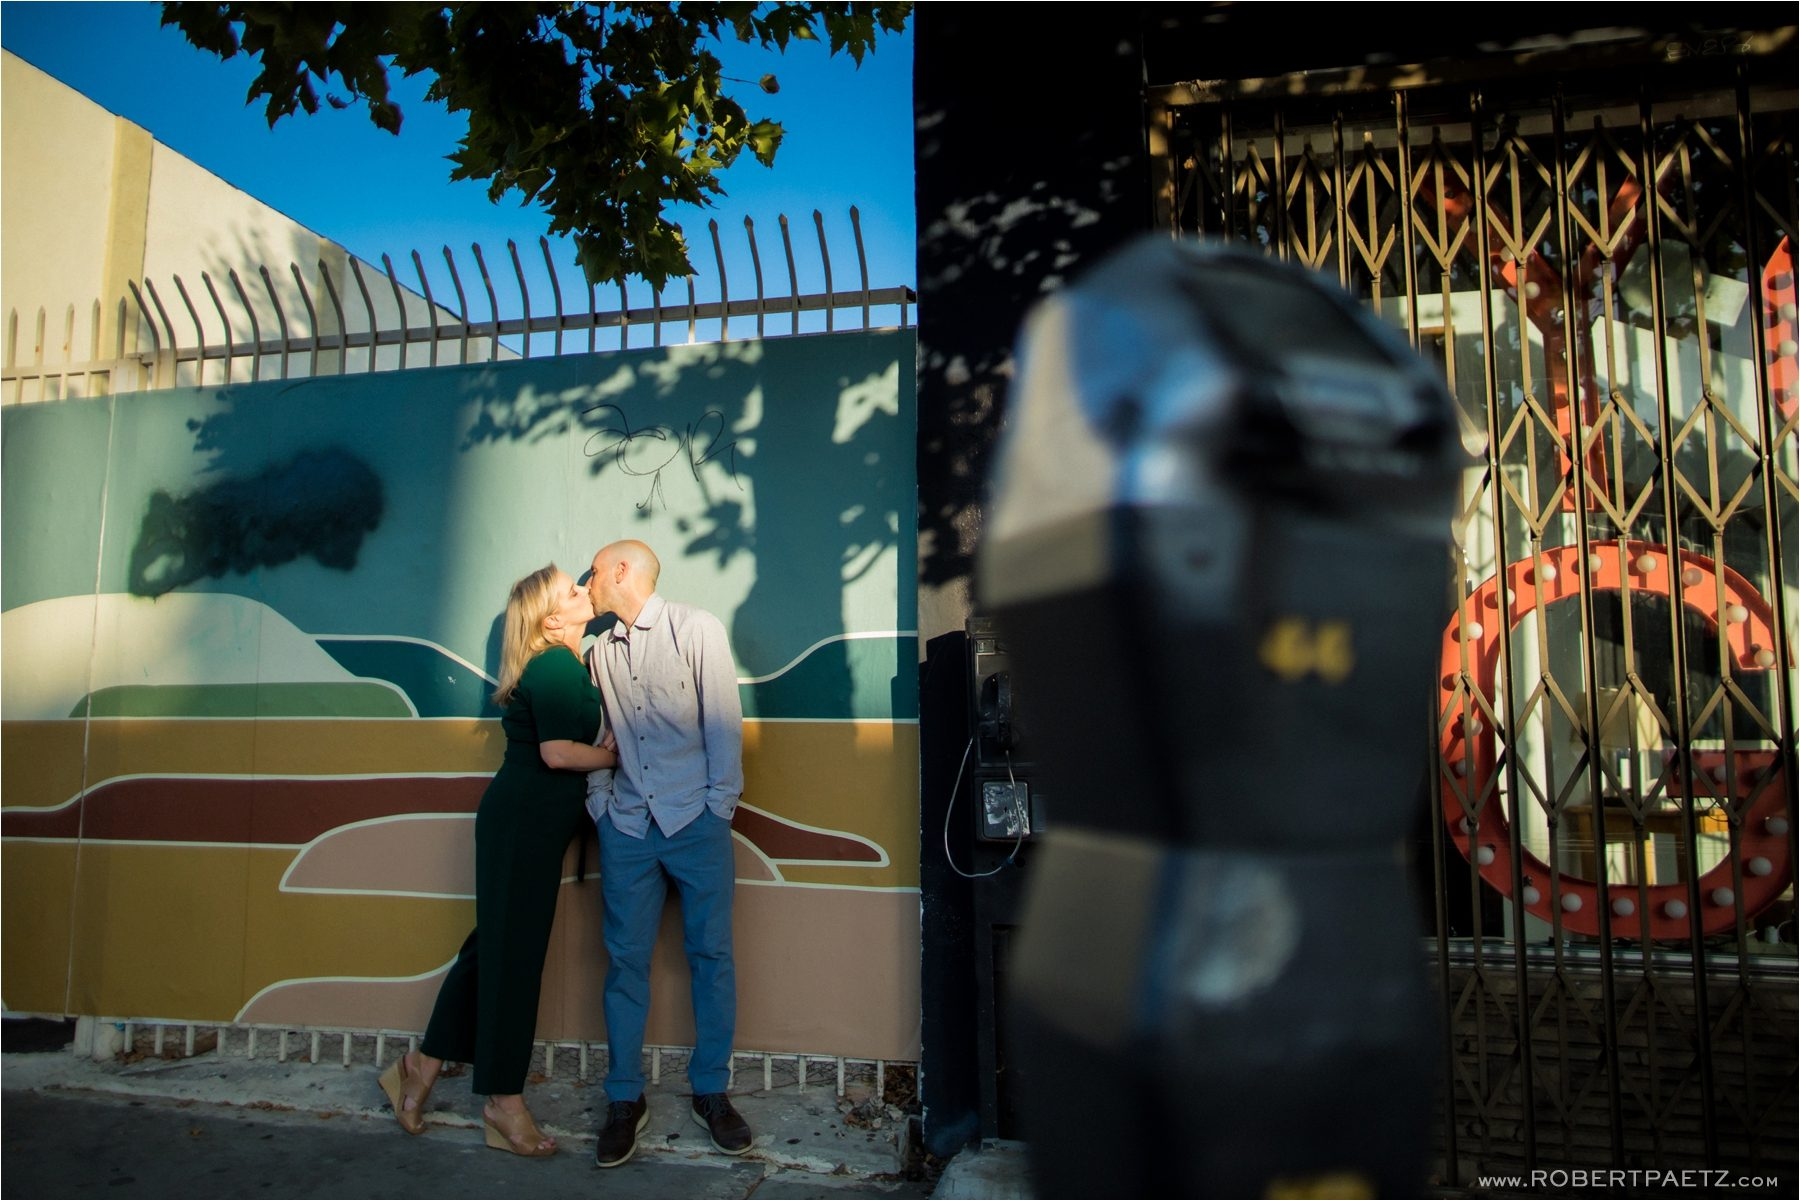 A creative engagement photography session in Highland Park, California by the Los Angeles based destination wedding photographer, Robert Paetz.